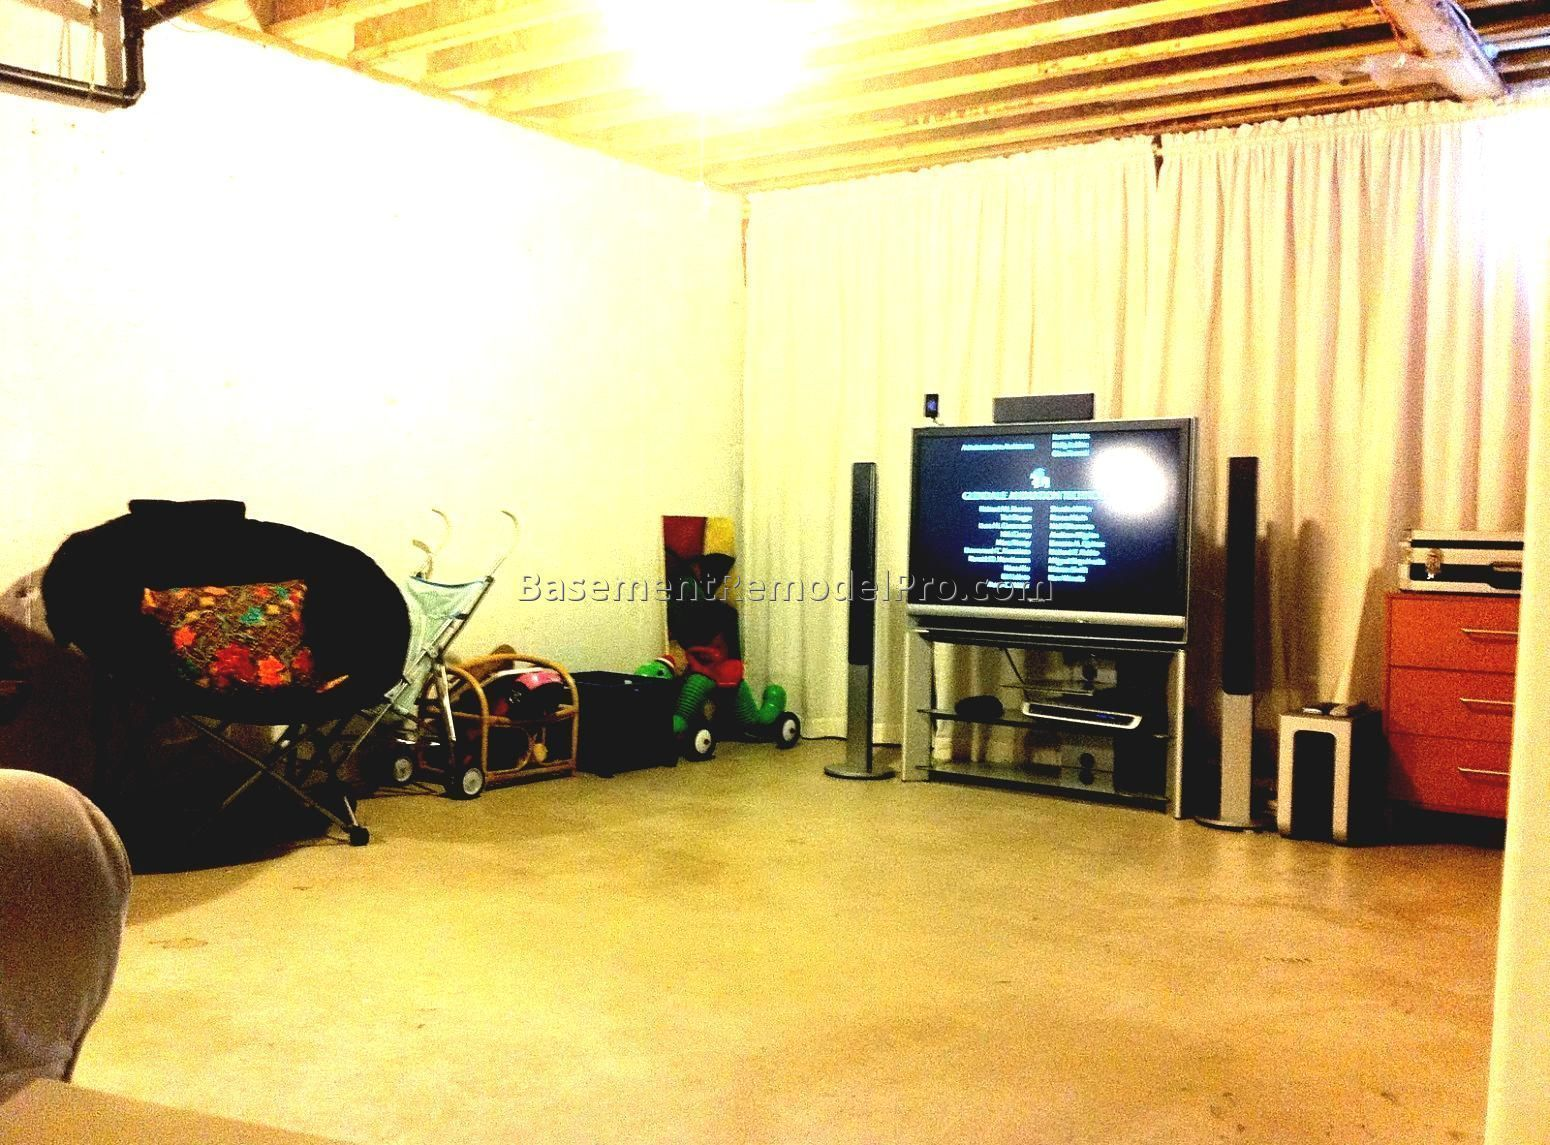 All about basement ideas and design tags unfinished basement ideas basement ideas on a budget basement ideas finished basement ideas family